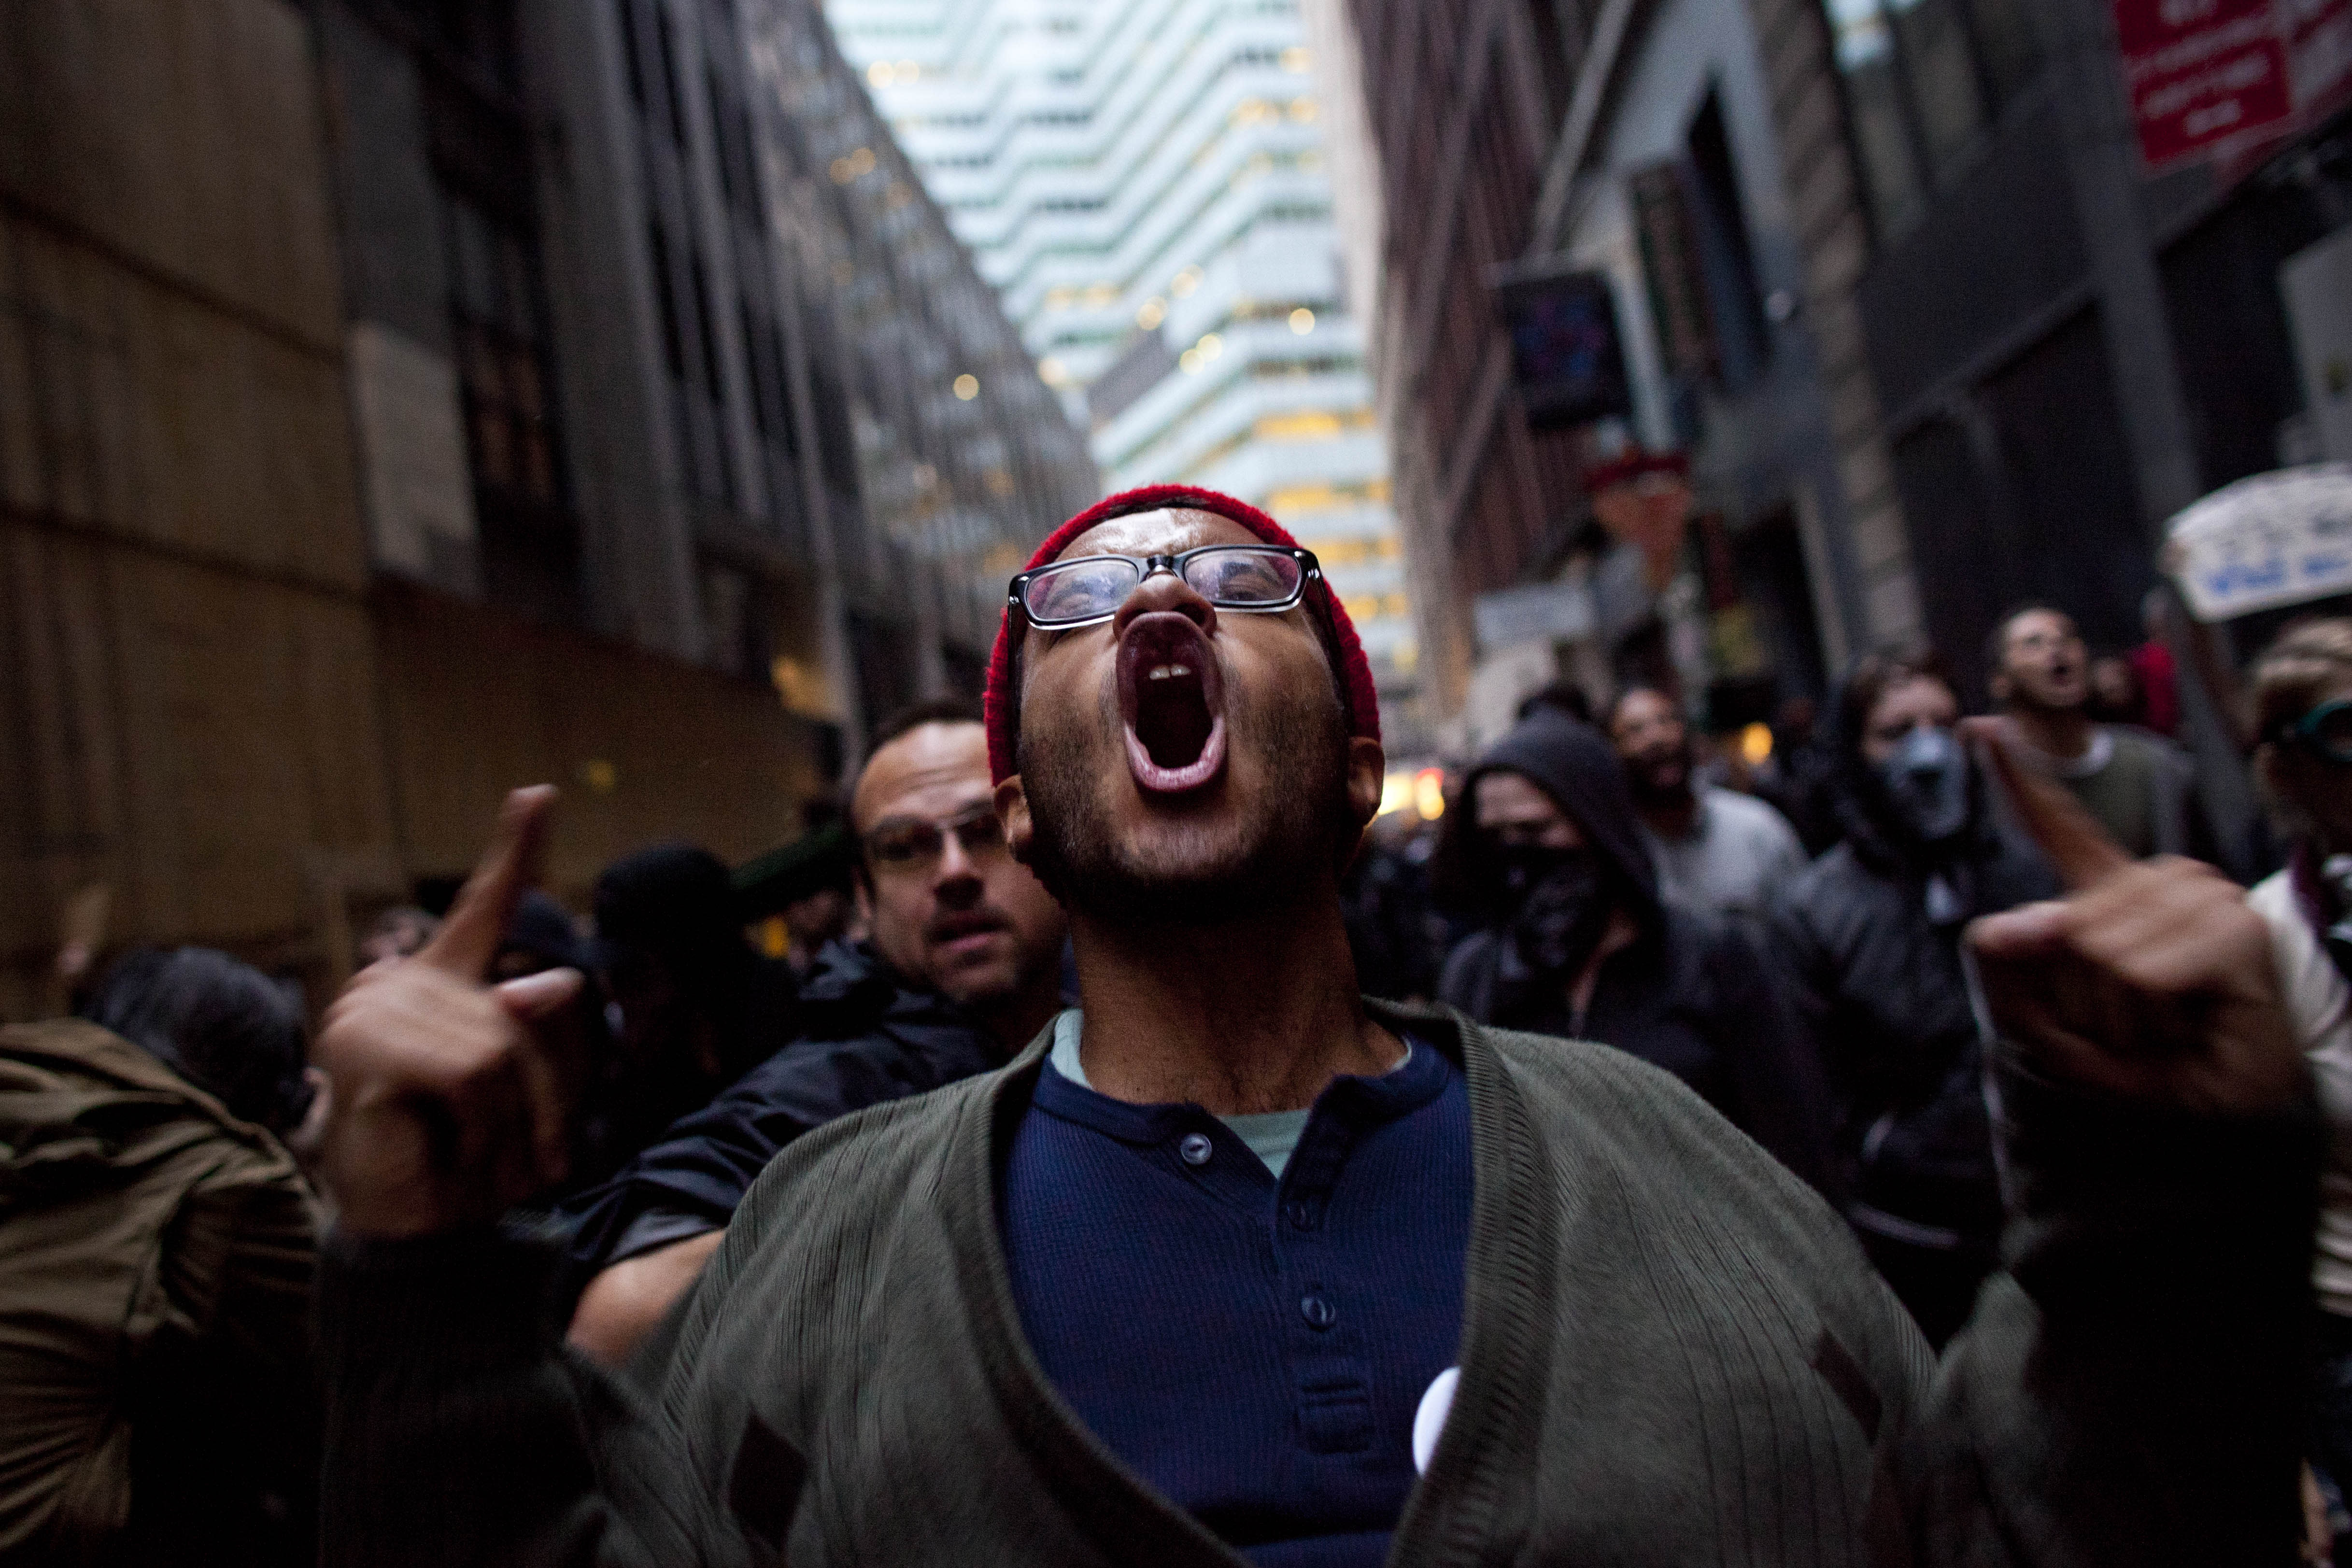 FILE - In this Friday, Oct. 14, 2011 file photo, a man participating in the Occupy Wall Street protests screams while marching towards Wall Street in New York. Americans, Republicans and Democrats alike, are asking some fundamental questions about the state of the union that go beyond how to grow the economy or curb foreclosures. Among the most profound: What is - and perhaps should be - the role of government in our lives? (AP Photo/Andrew Burton, File)